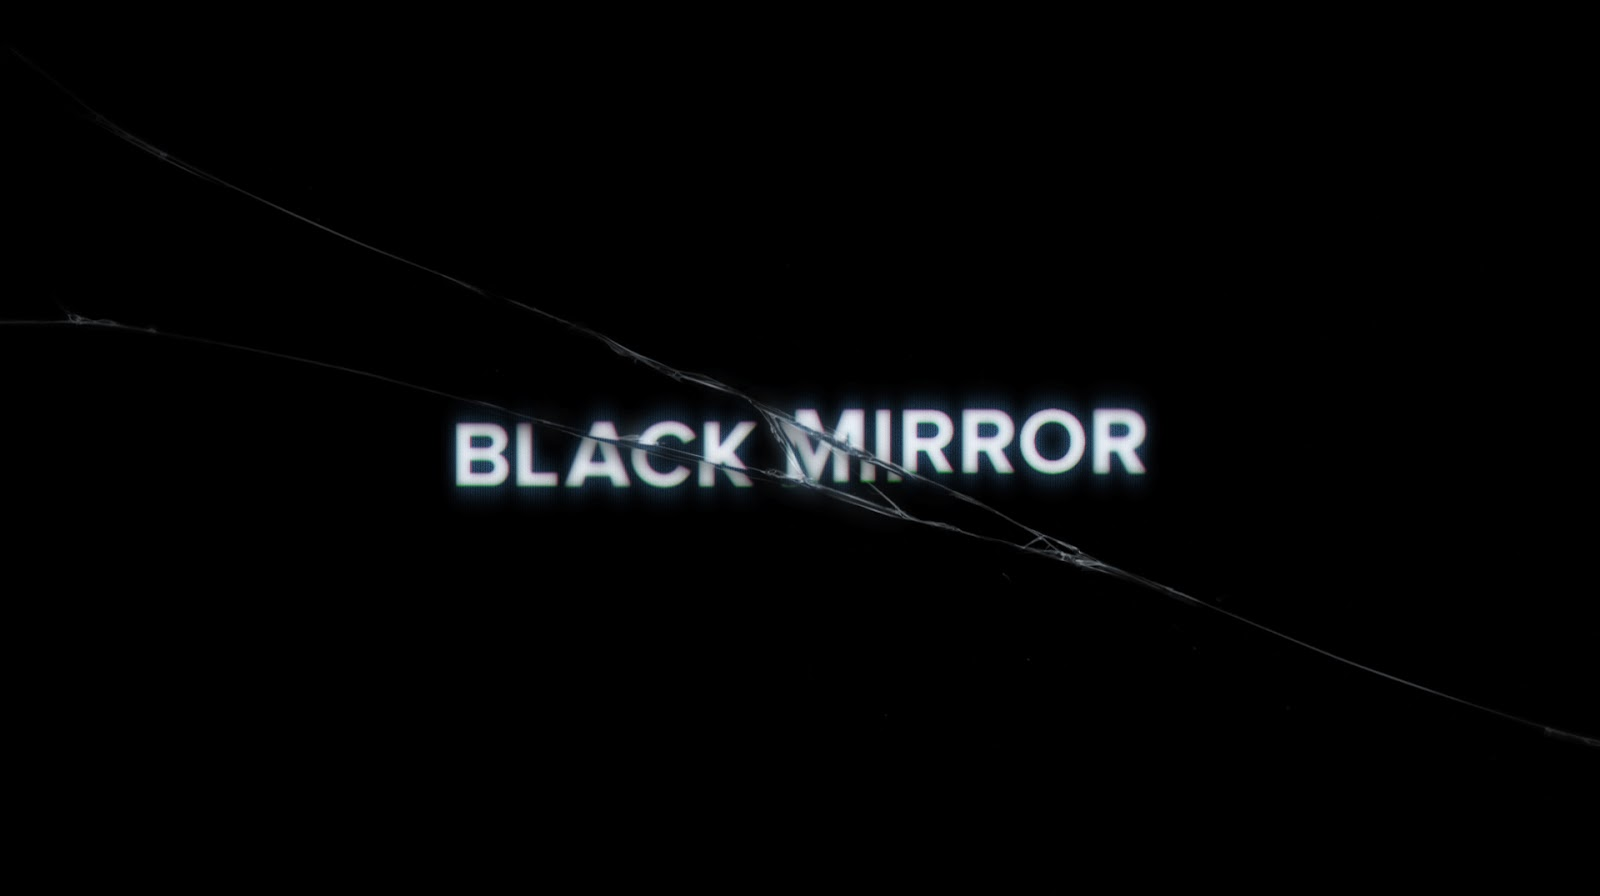 Black Mirror is some of the most imaginative TV out there ...